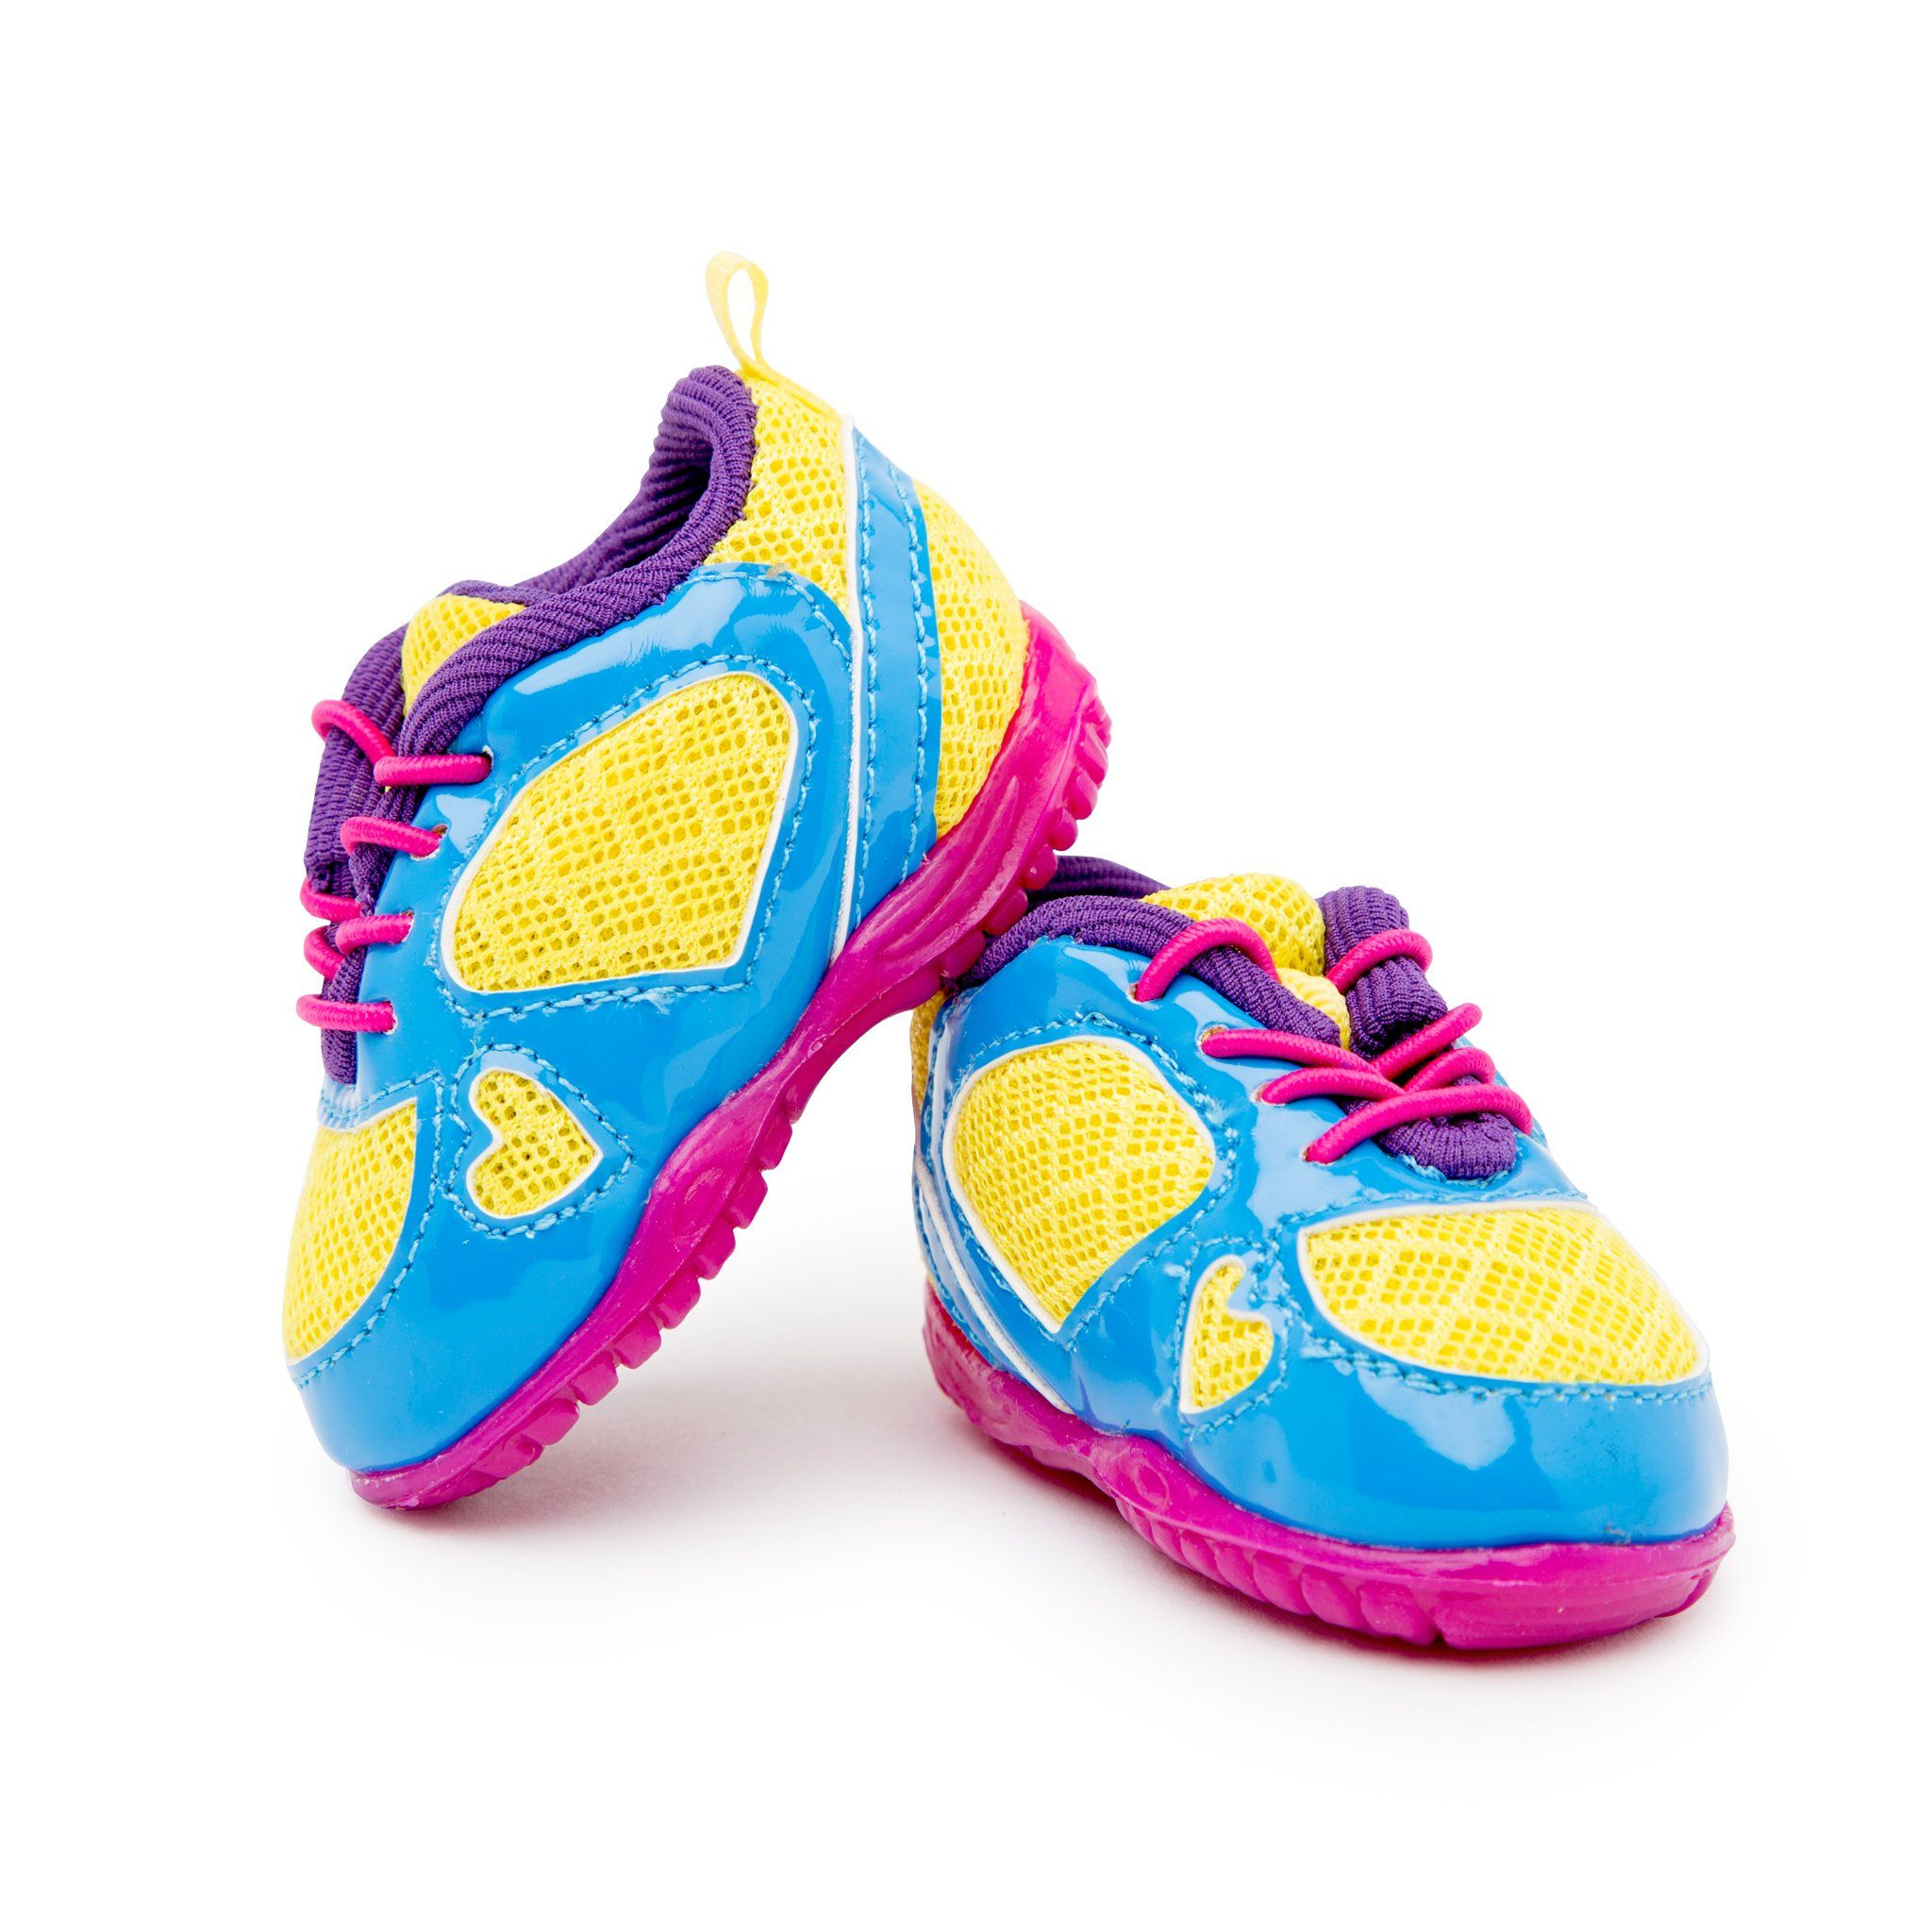 Yoho Trainer yellow, blue, purple and pink multi-colour bright fun running shoes fit all 18 inch dolls.